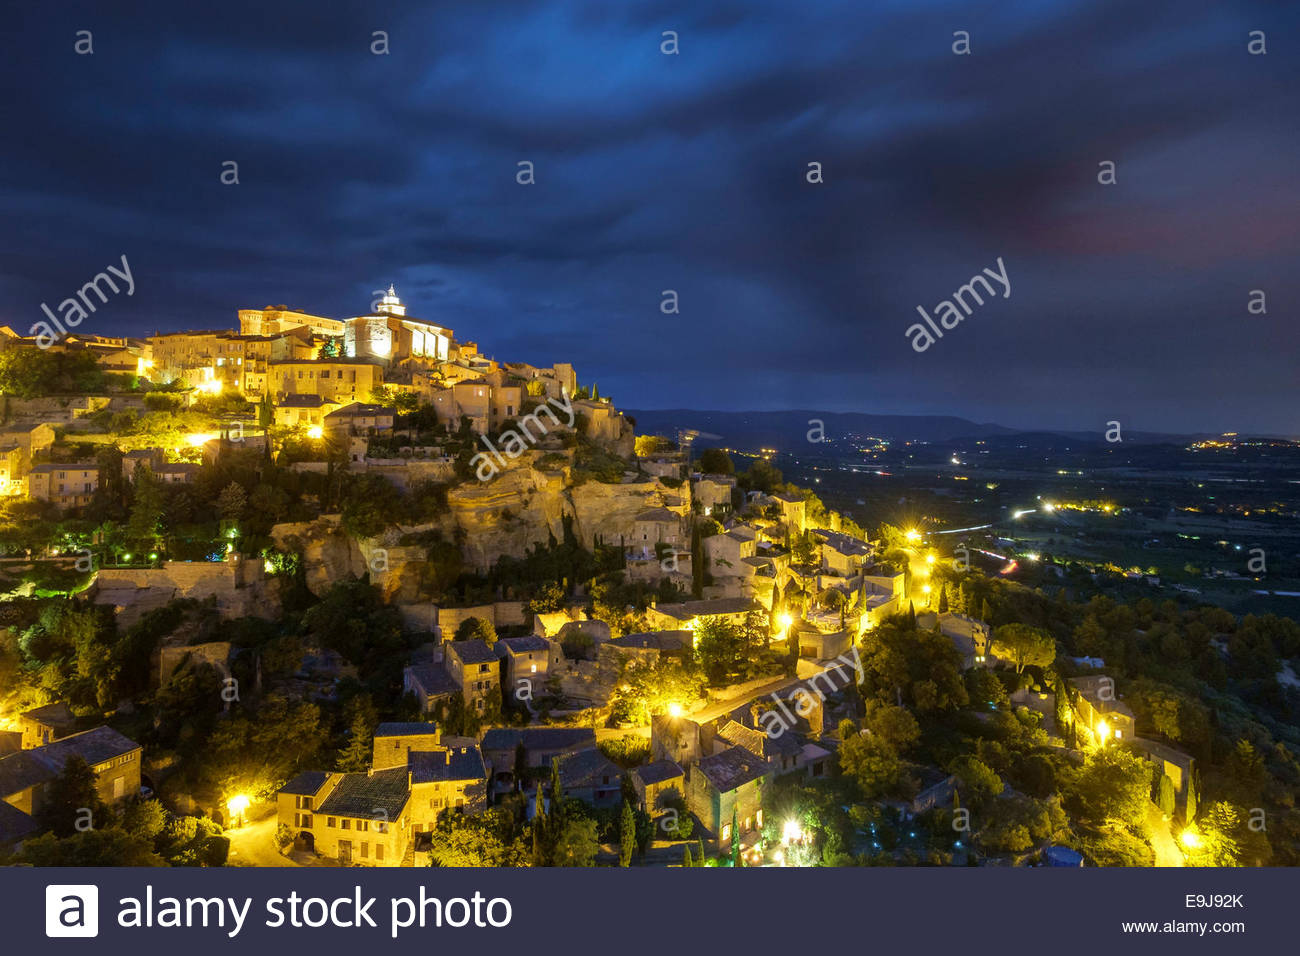 Hilltop town of Gordes at night, Vaucluse, Provence-Alpes-Côte d'Azur, France - Stock Image